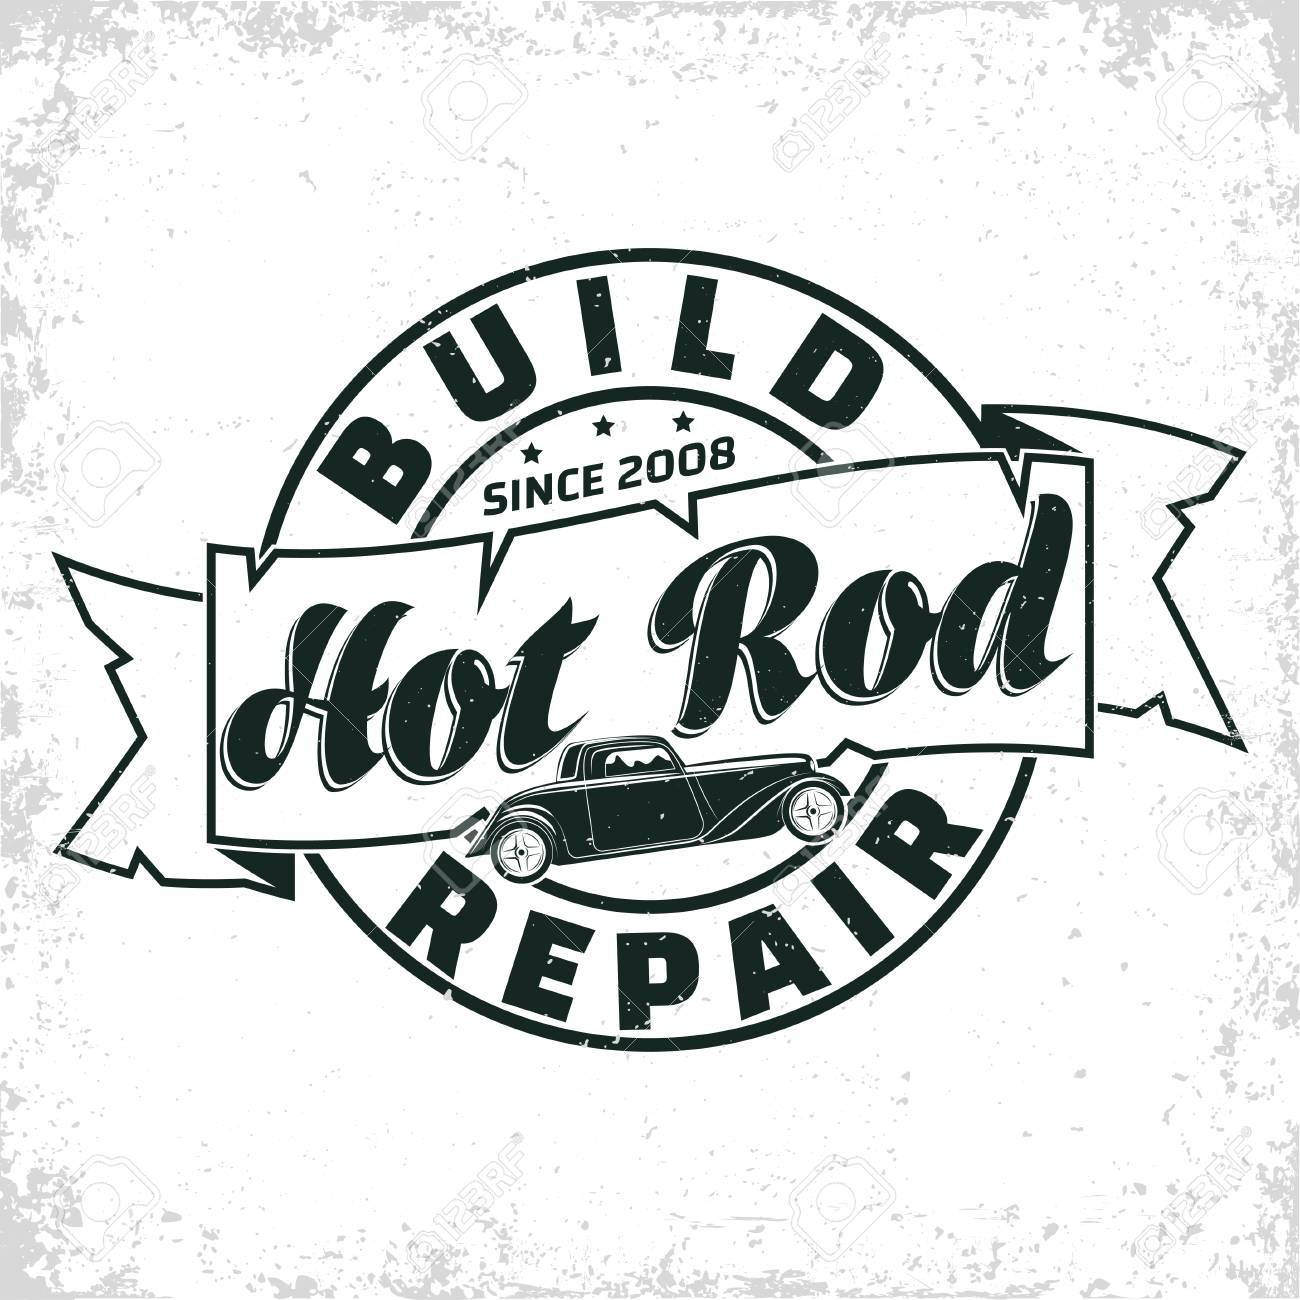 Hot Rod Garage Logo Design Emblem Of Muscle Car Repair And Service Royalty Free Cliparts Vectors And Stock Illustration Image 109580540